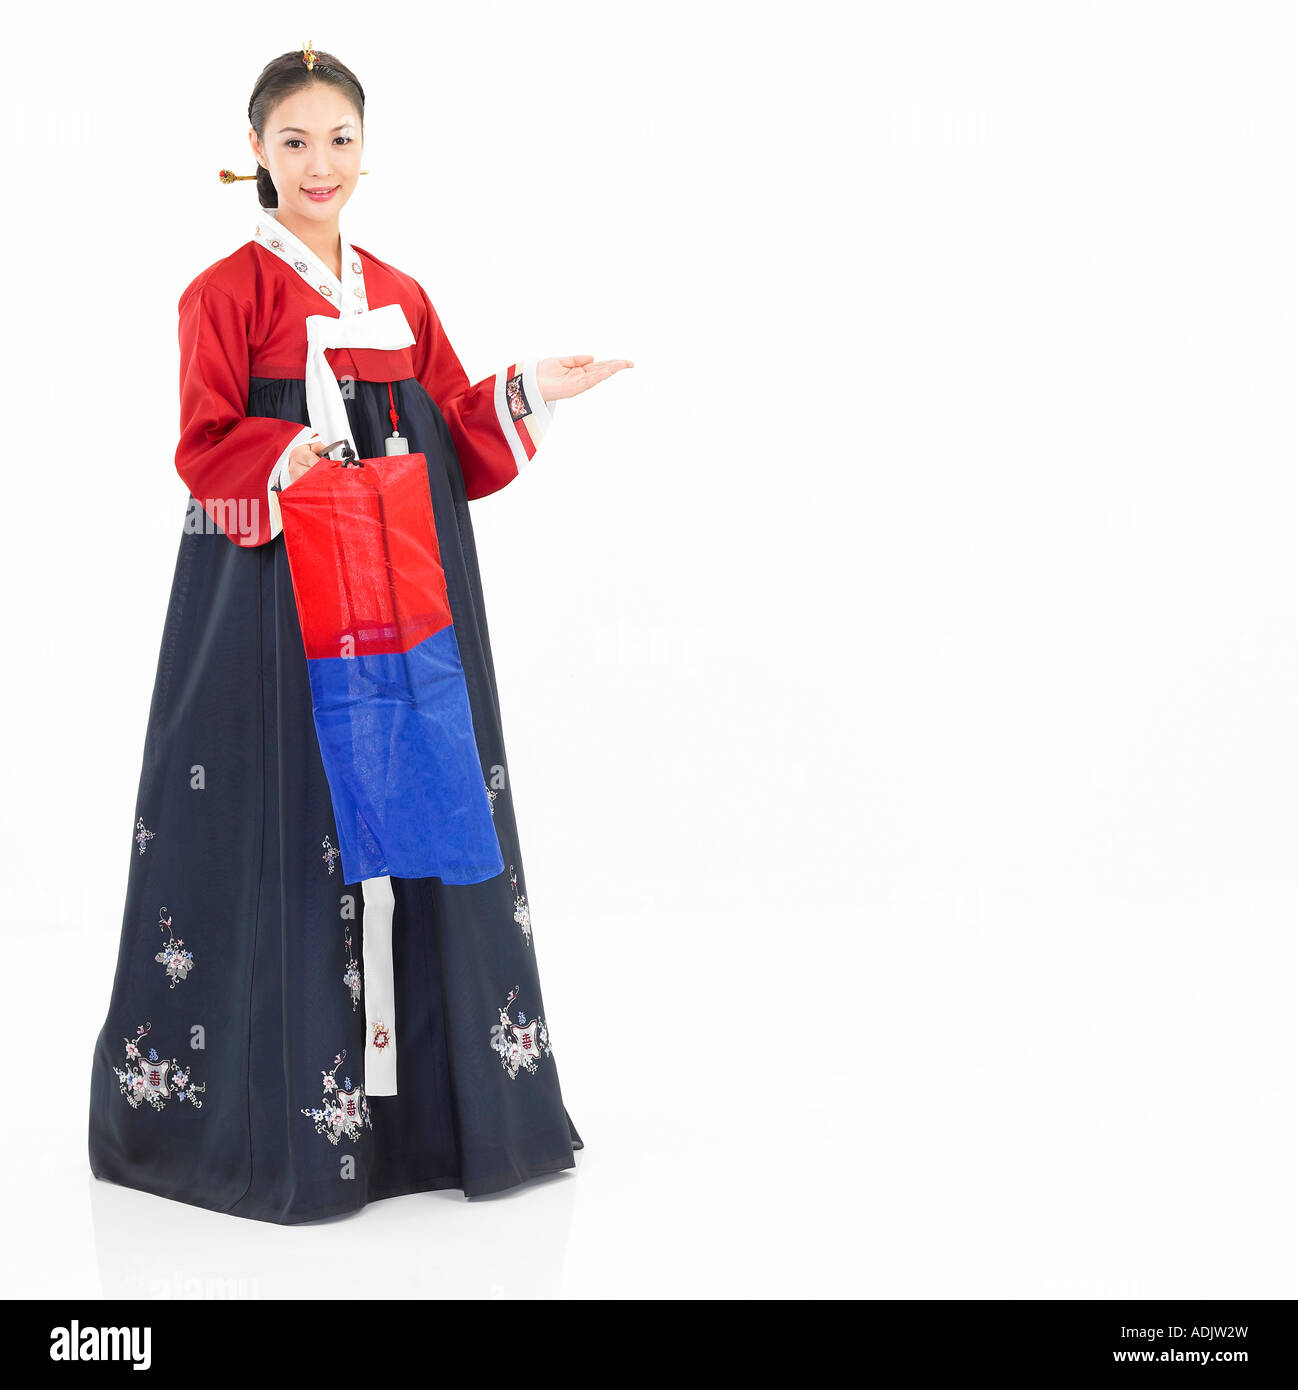 dbcb4ef1e A Korean woman wearing Hanboek is holding a traditional light - Stock Image